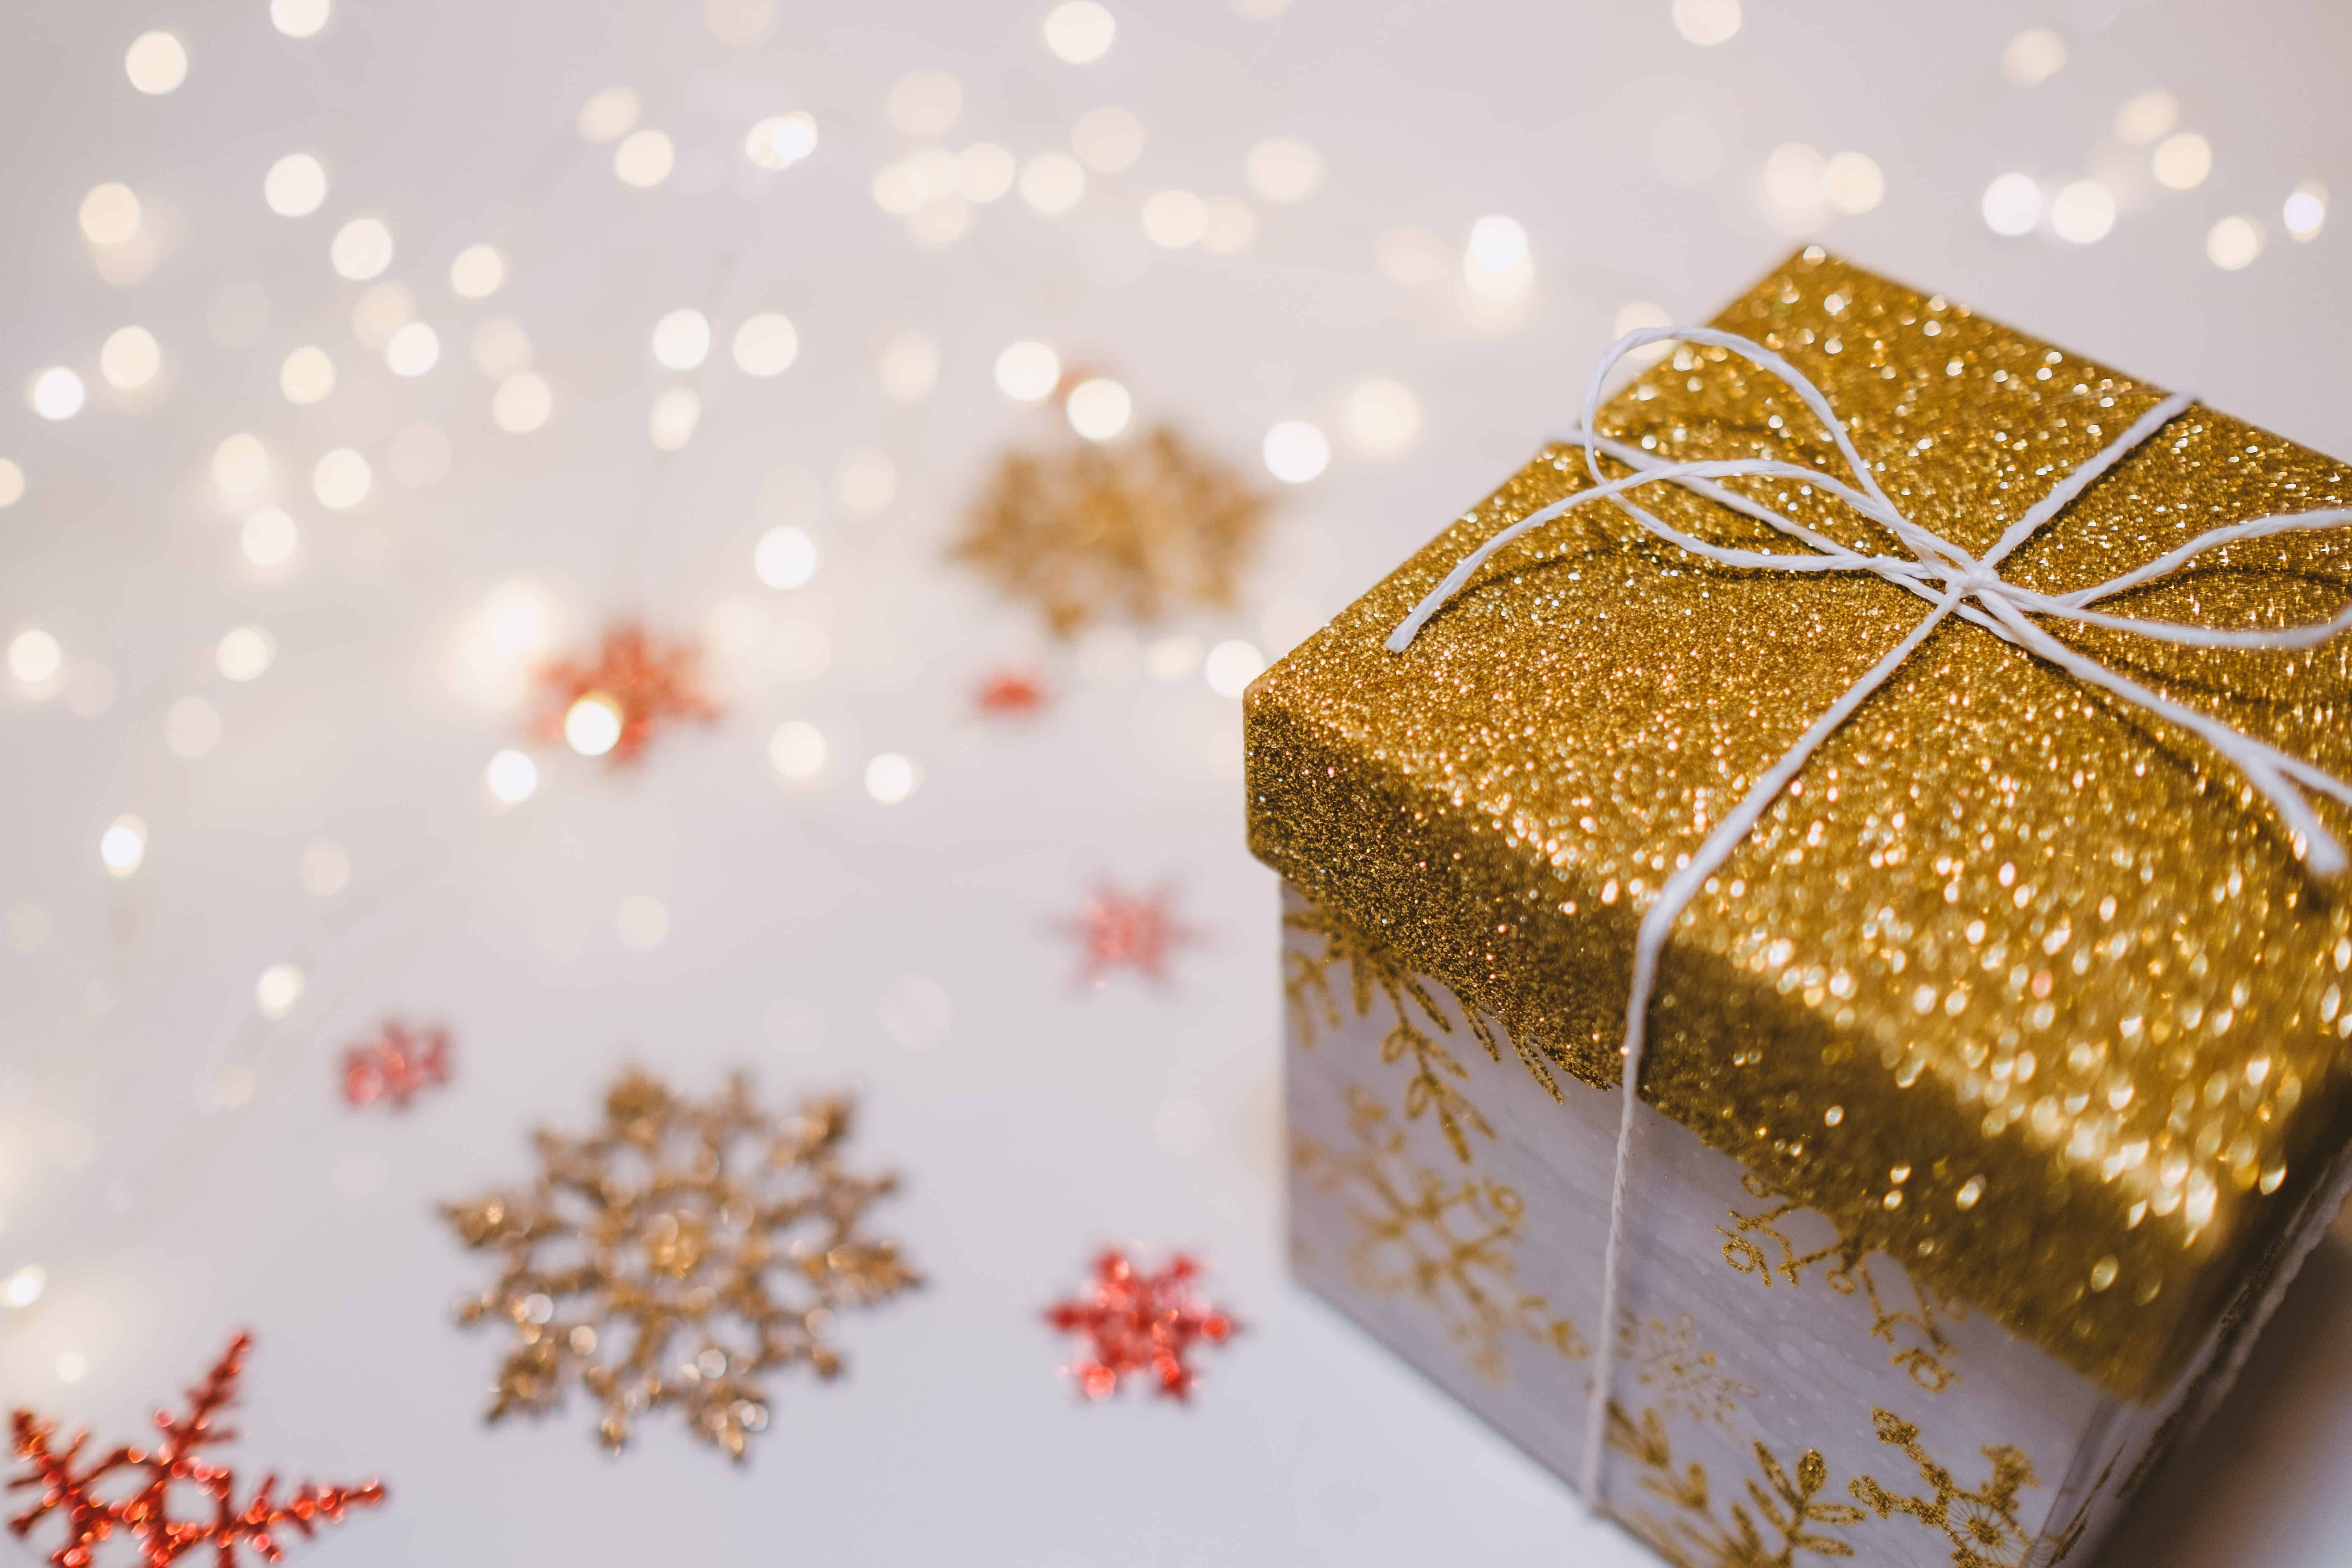 gift wrapped in gold wrapping paper